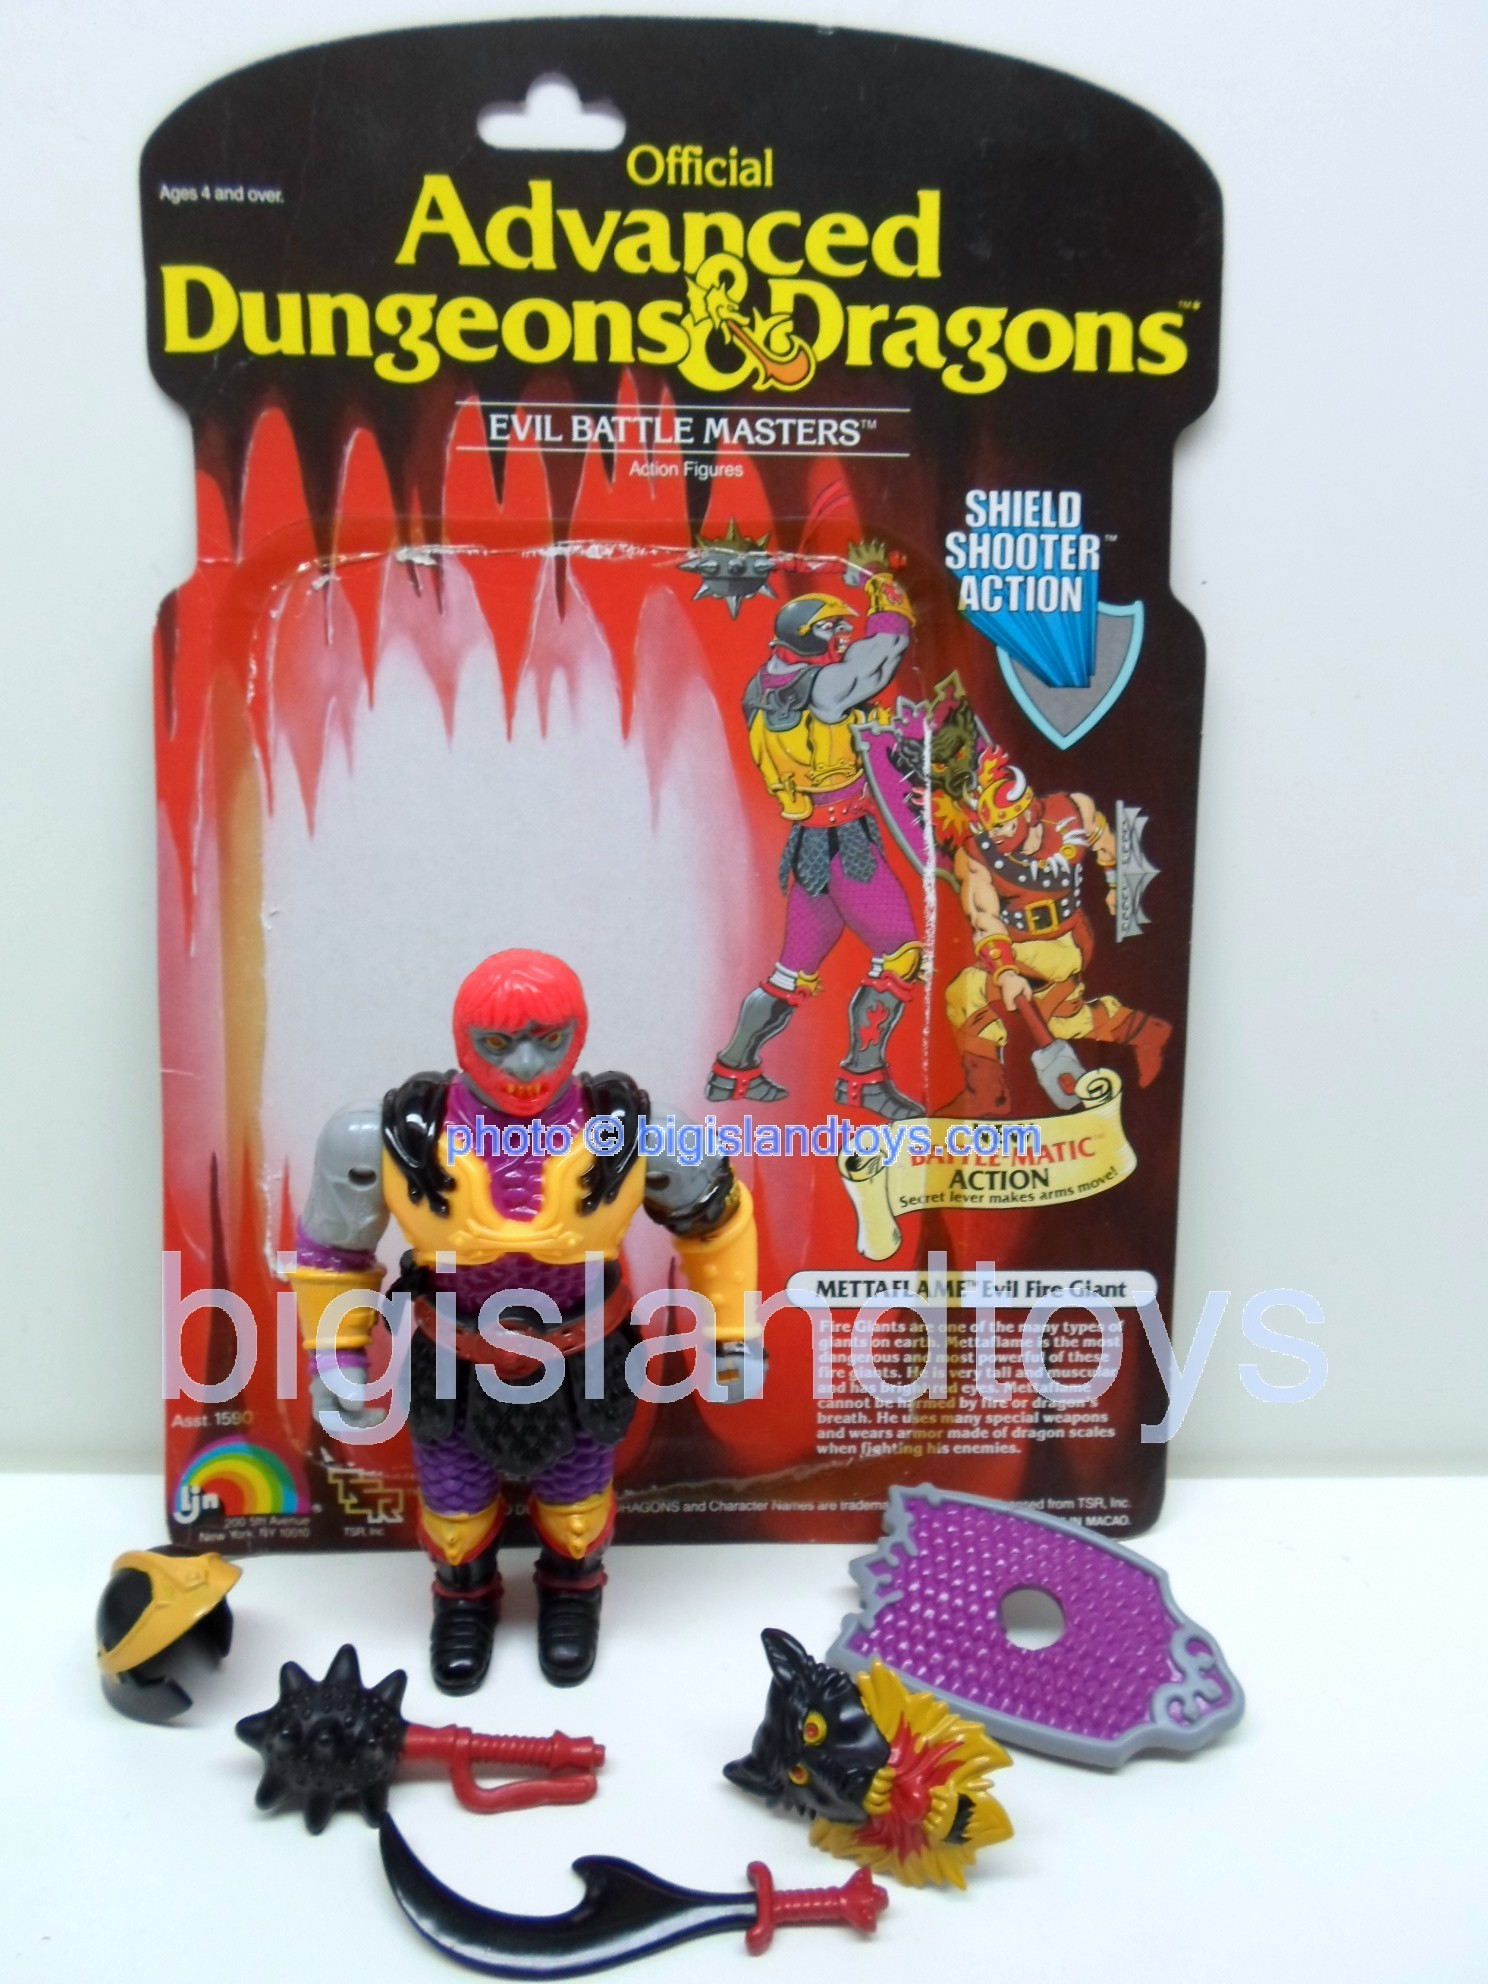 Advanced Dungeons & Dragons LJN Evil Figures   Metta Flame Evil Fire Giant Shield Shooter